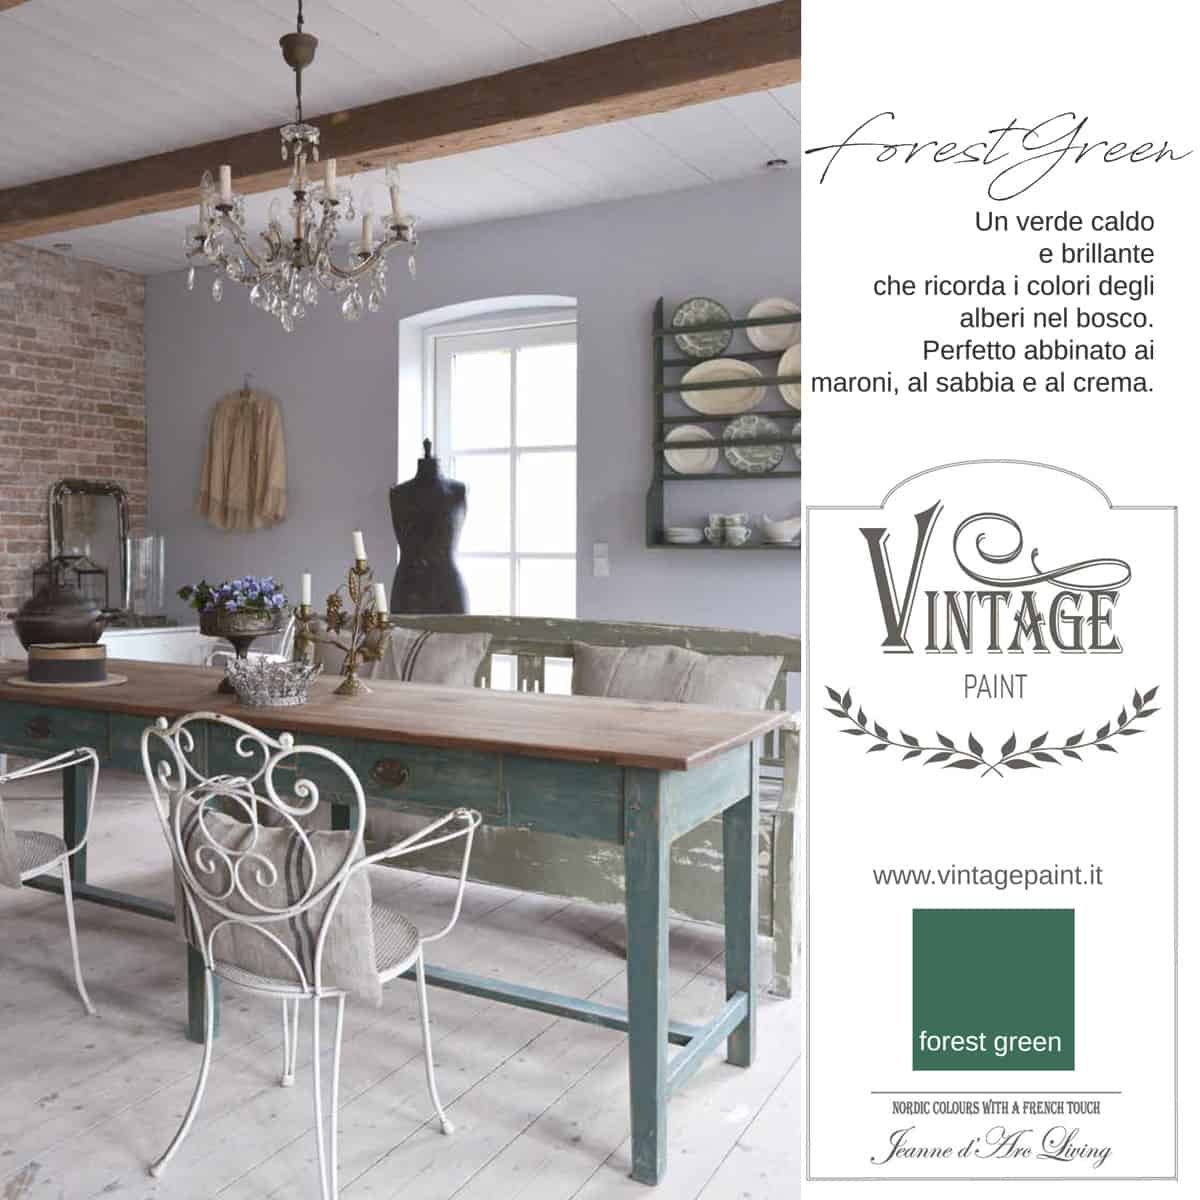 forest green verde vintage chalk paint vernici shabby chic autentico look gesso